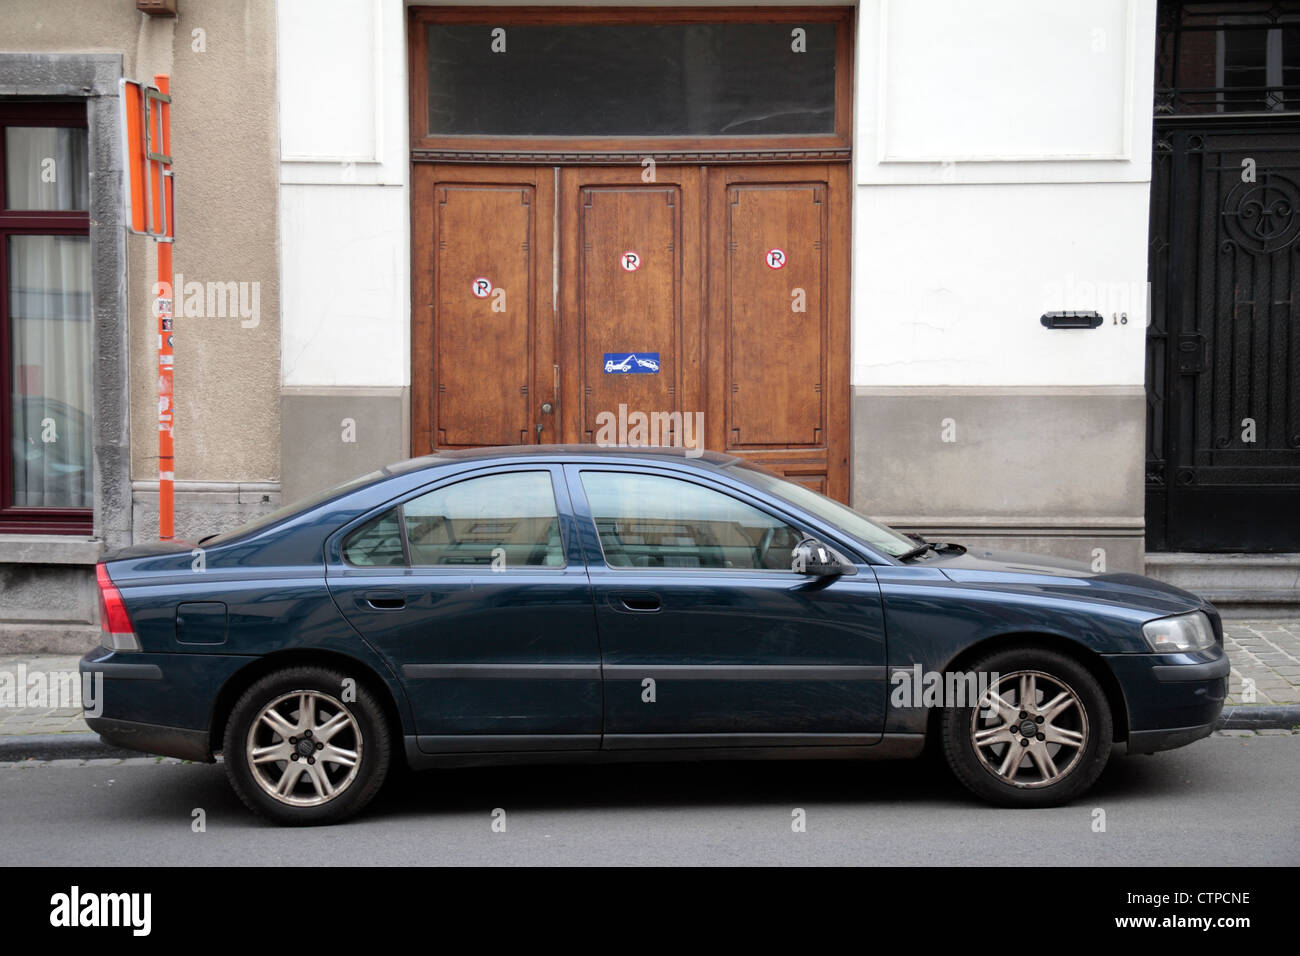 Car blocking an entrance with a sign warning the parked cars will be towed in  Mons, Wallonia, Southern Belgium. - Stock Image